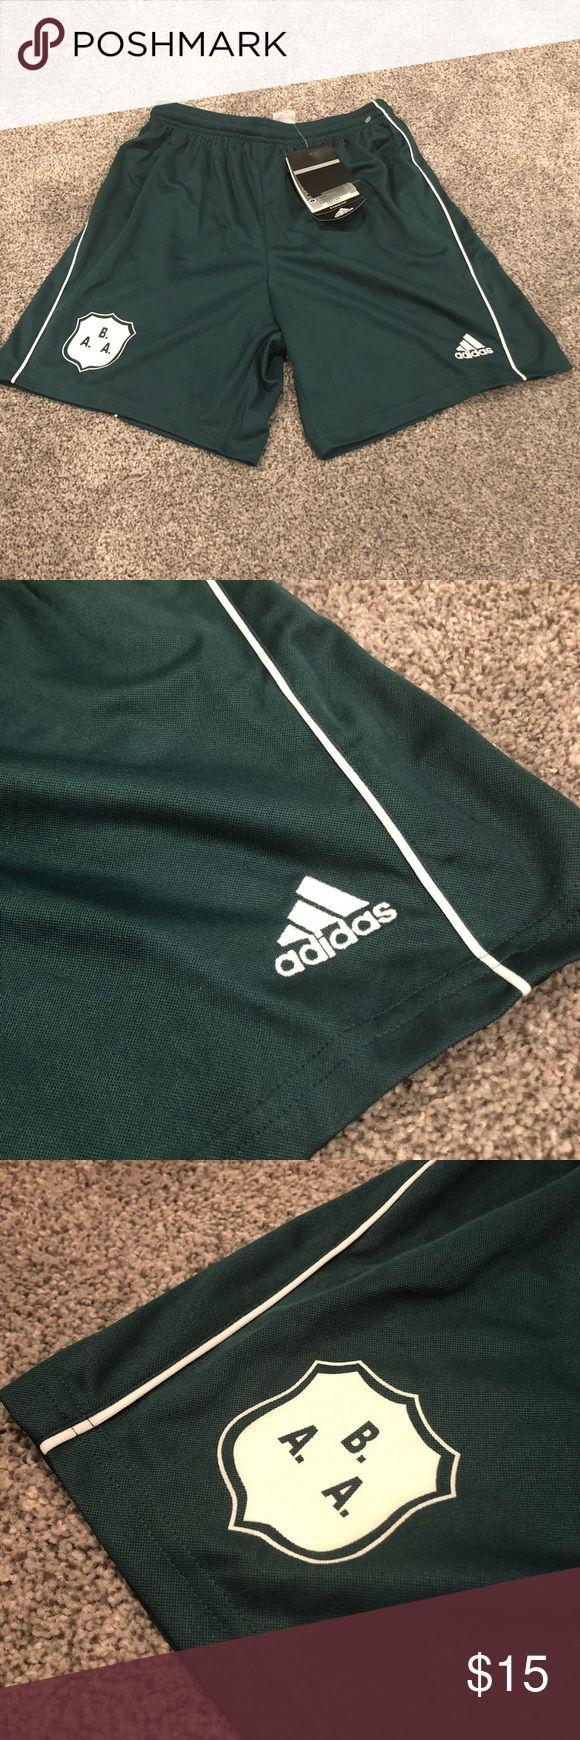 Adidas Soccer Shorts Adidas Climalite Soccer Shorts. Size small. New with tags. Women's or men's. adidas Shorts